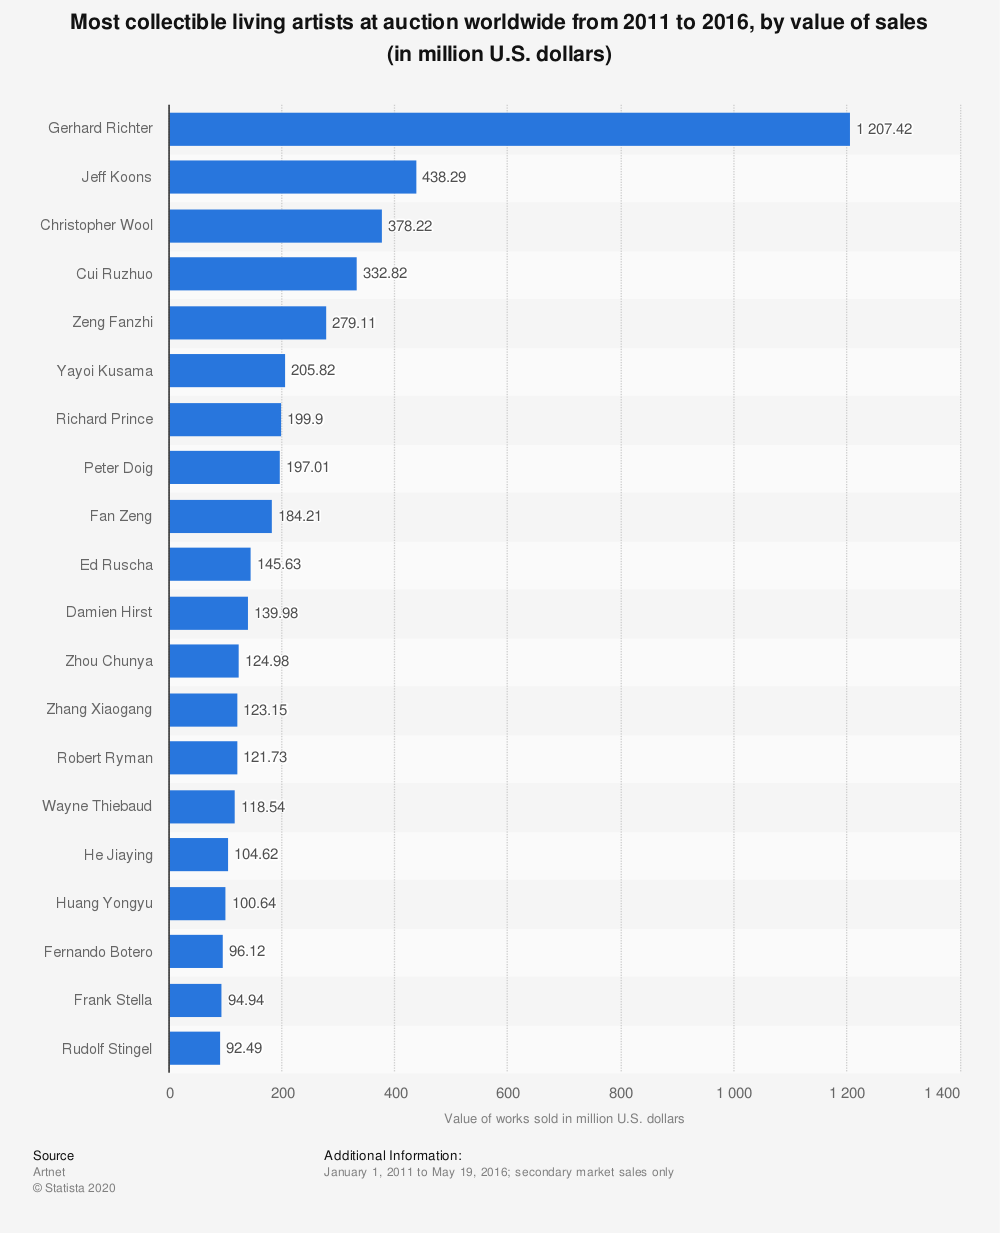 Statistic: Most collectible living artists at auction worldwide from 2011 to 2016, by value of sales (in million U.S. dollars) | Statista